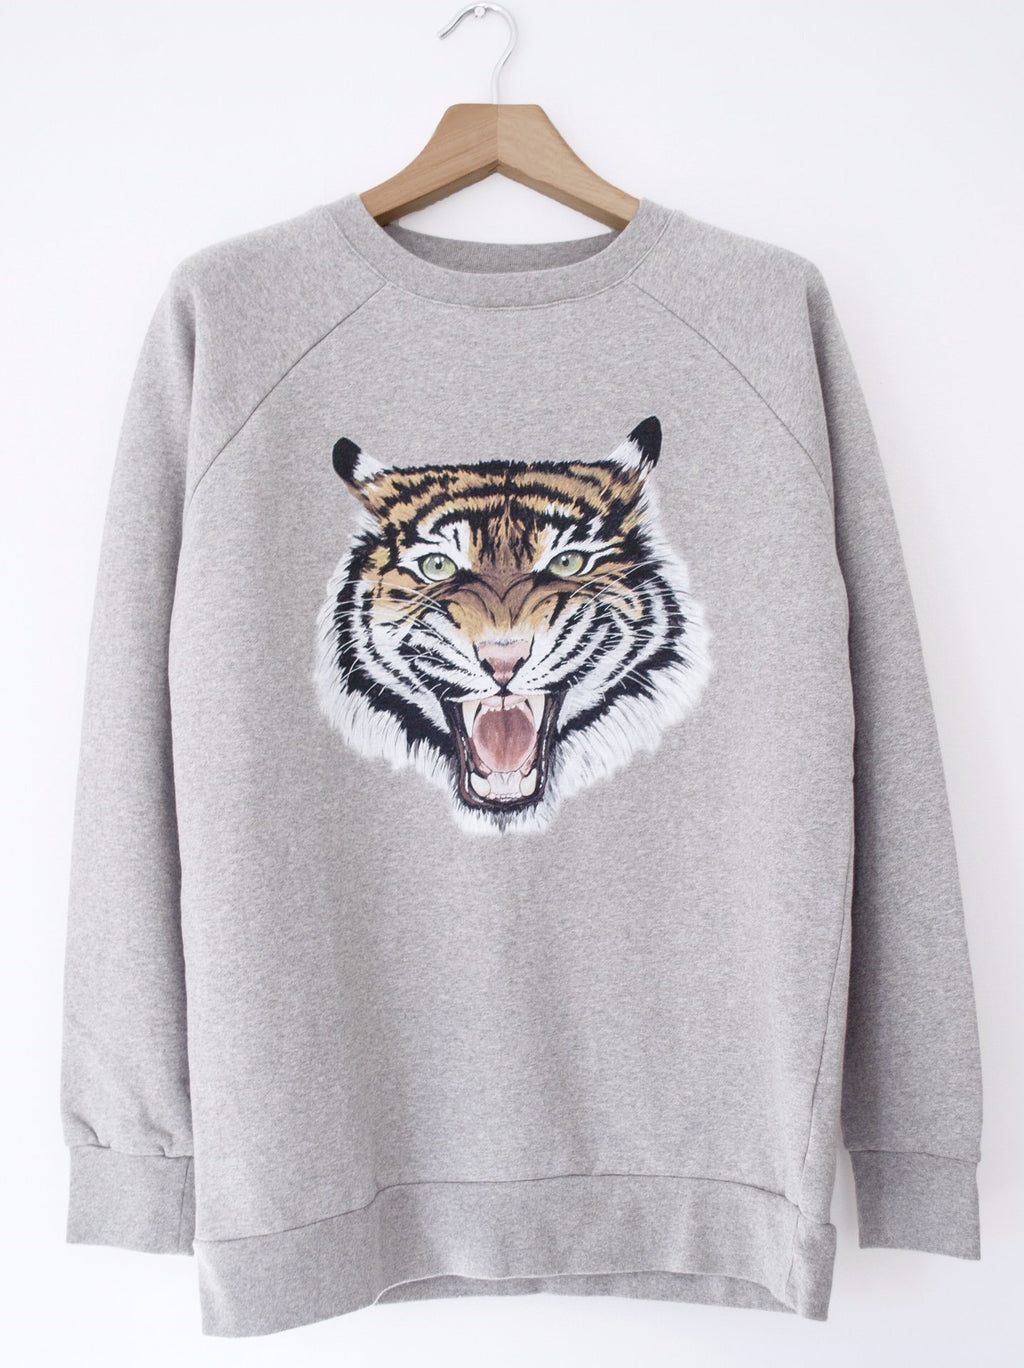 women's oversized grey tiger sweatshirt